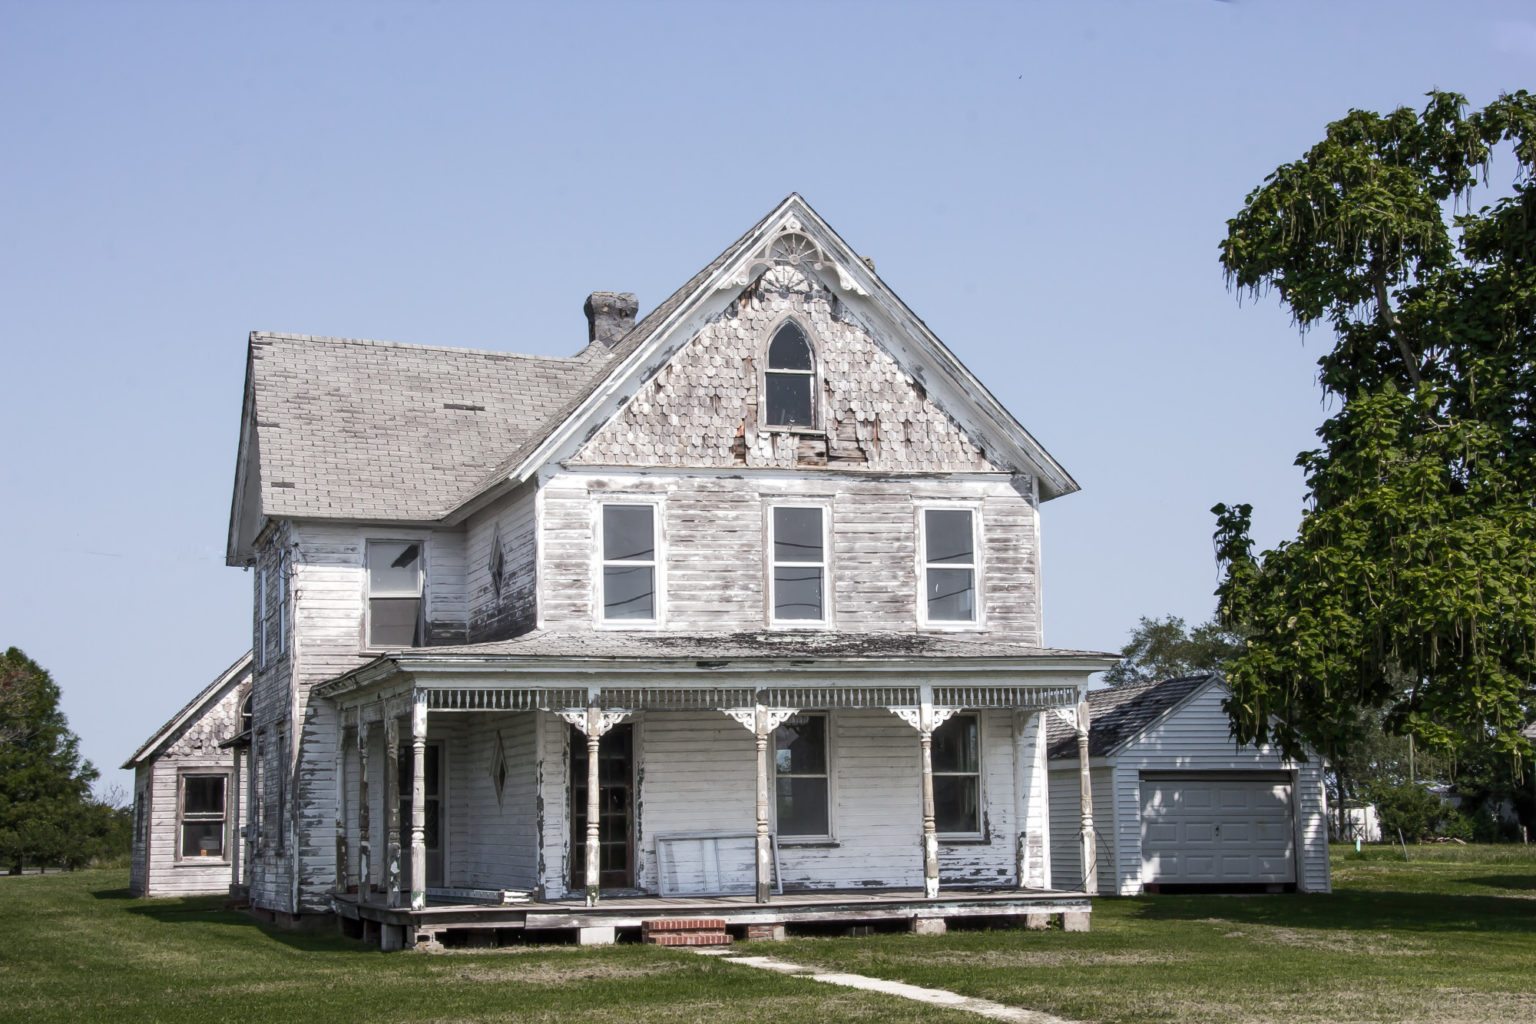 Sell a House in Poor Condition